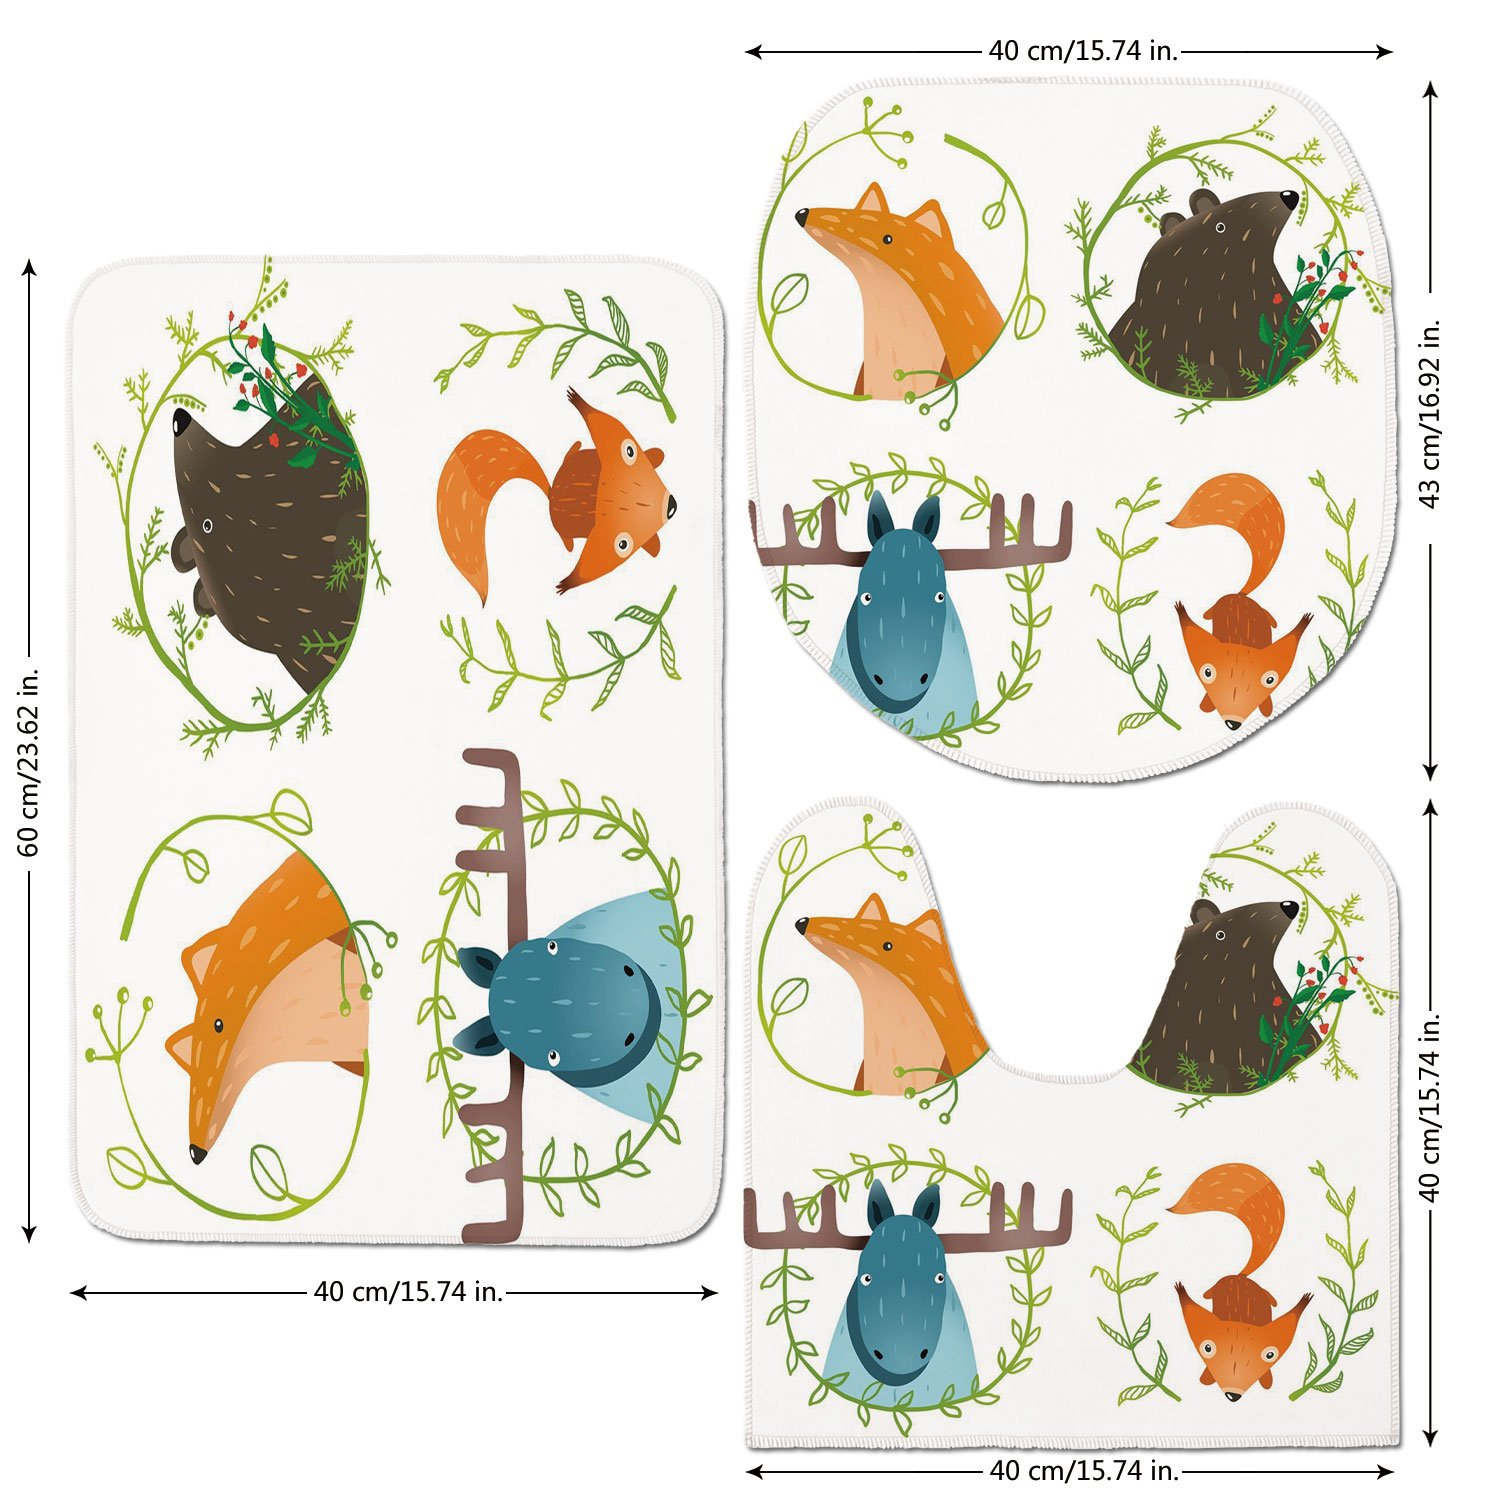 3 Piece Bathroom Mat Set,Cabin-Decor,Wild-Forest-Animals-Set-with-Laurel-Branches-Cartoon-Style-Funny-Characters,Multicolor.jpg,Bath Mat,Bathroom Carpet Rug,Non-Slip